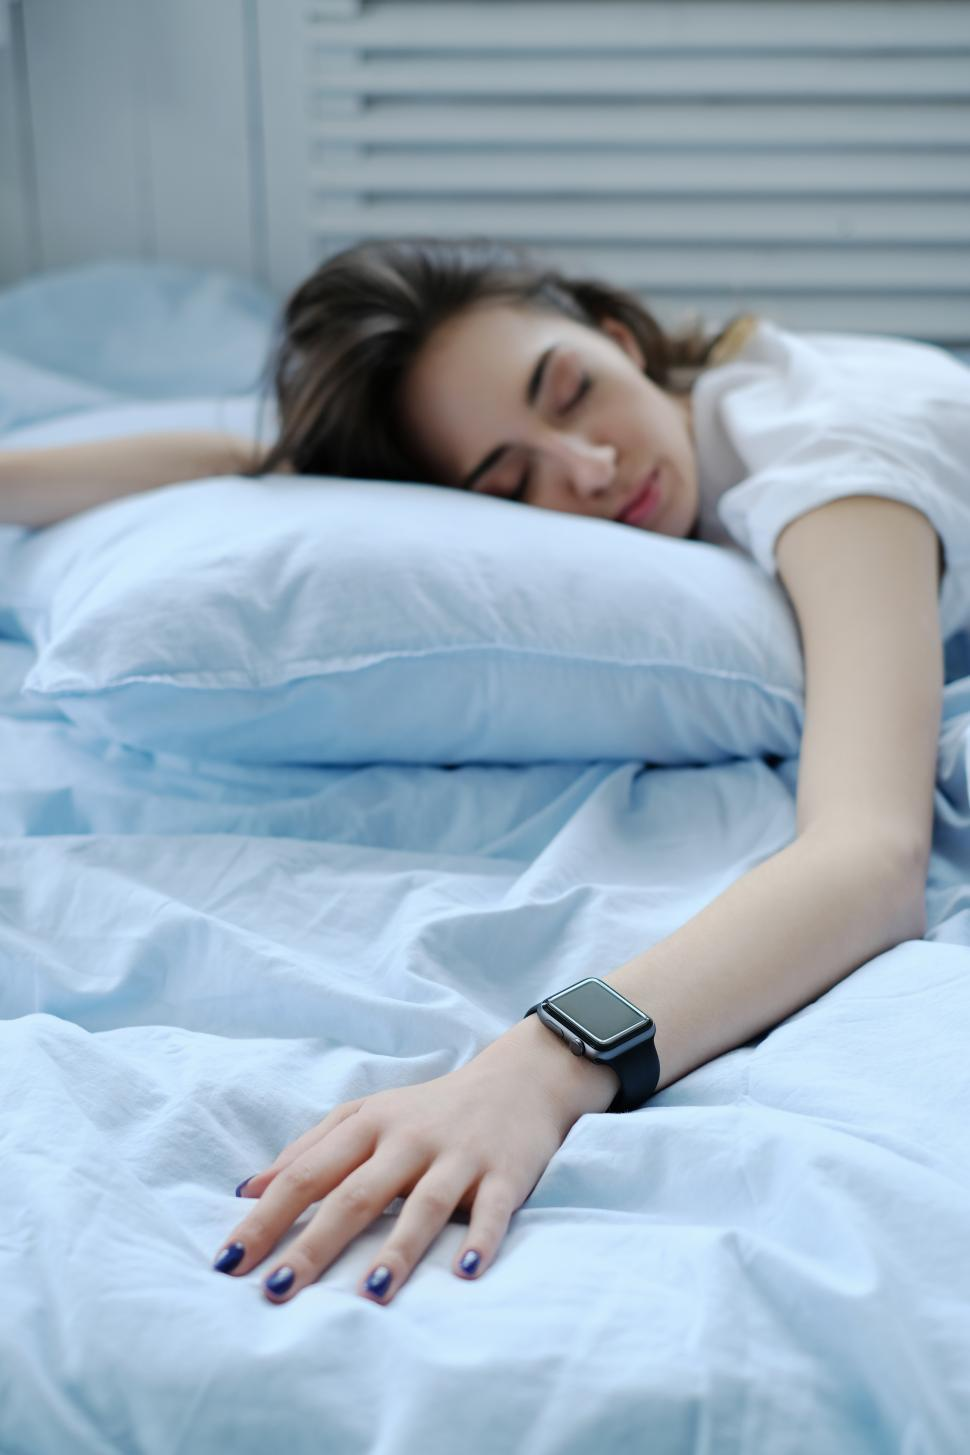 Download Free Stock Photo of Woman with smart watch on her wrist, in bed